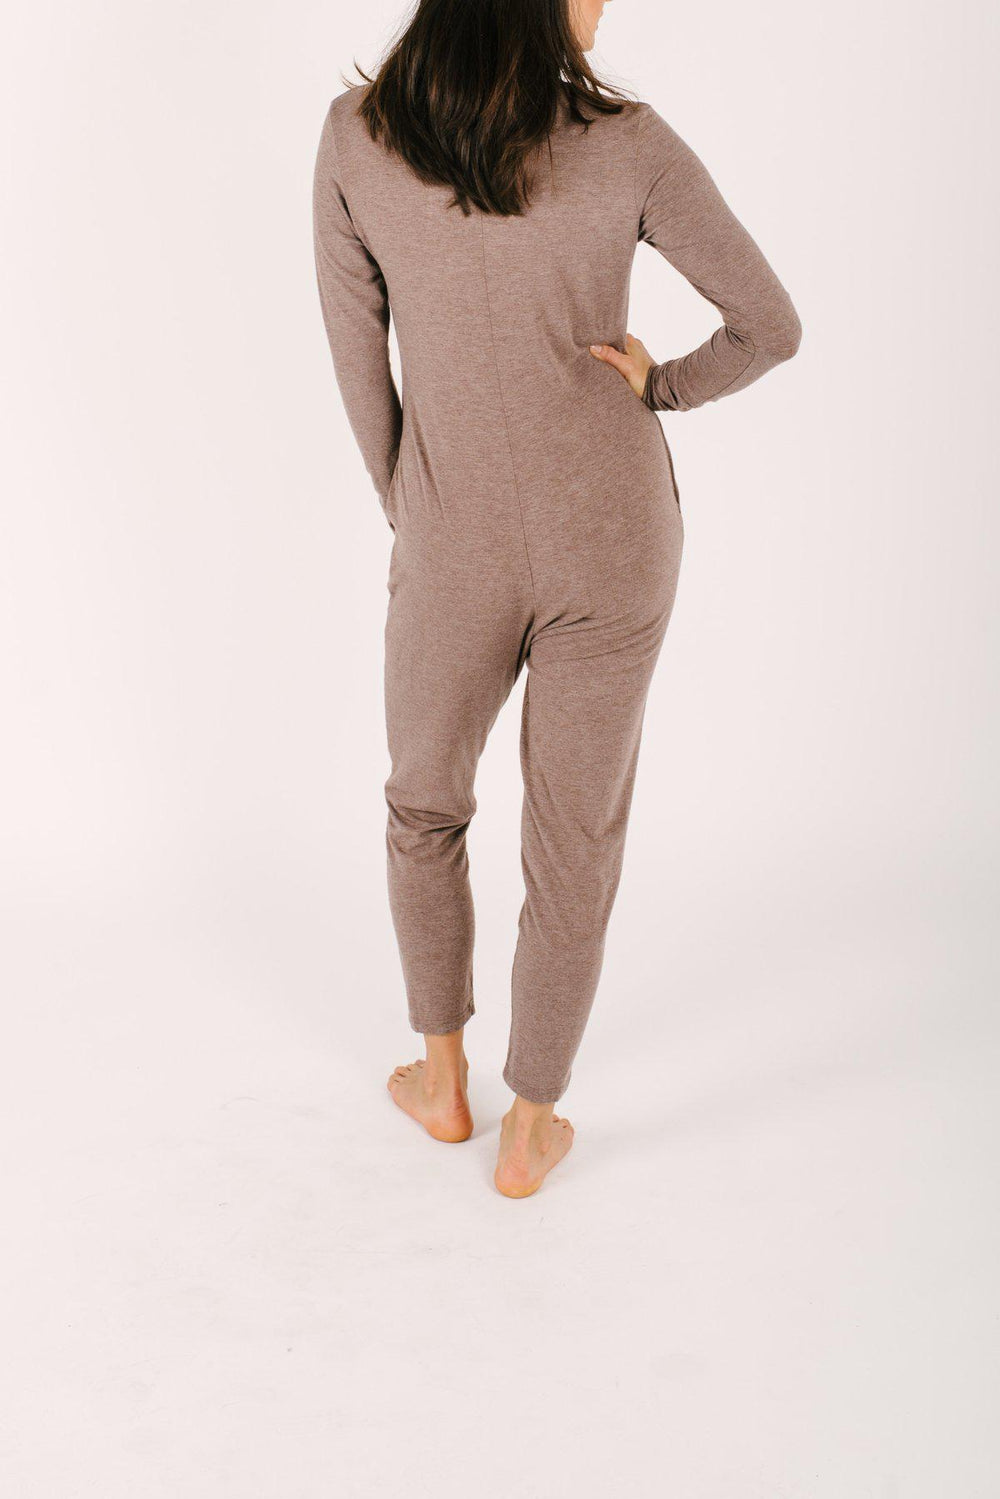 Smash+Tess Friday Romper in Chai Latte-The Trendy Walrus